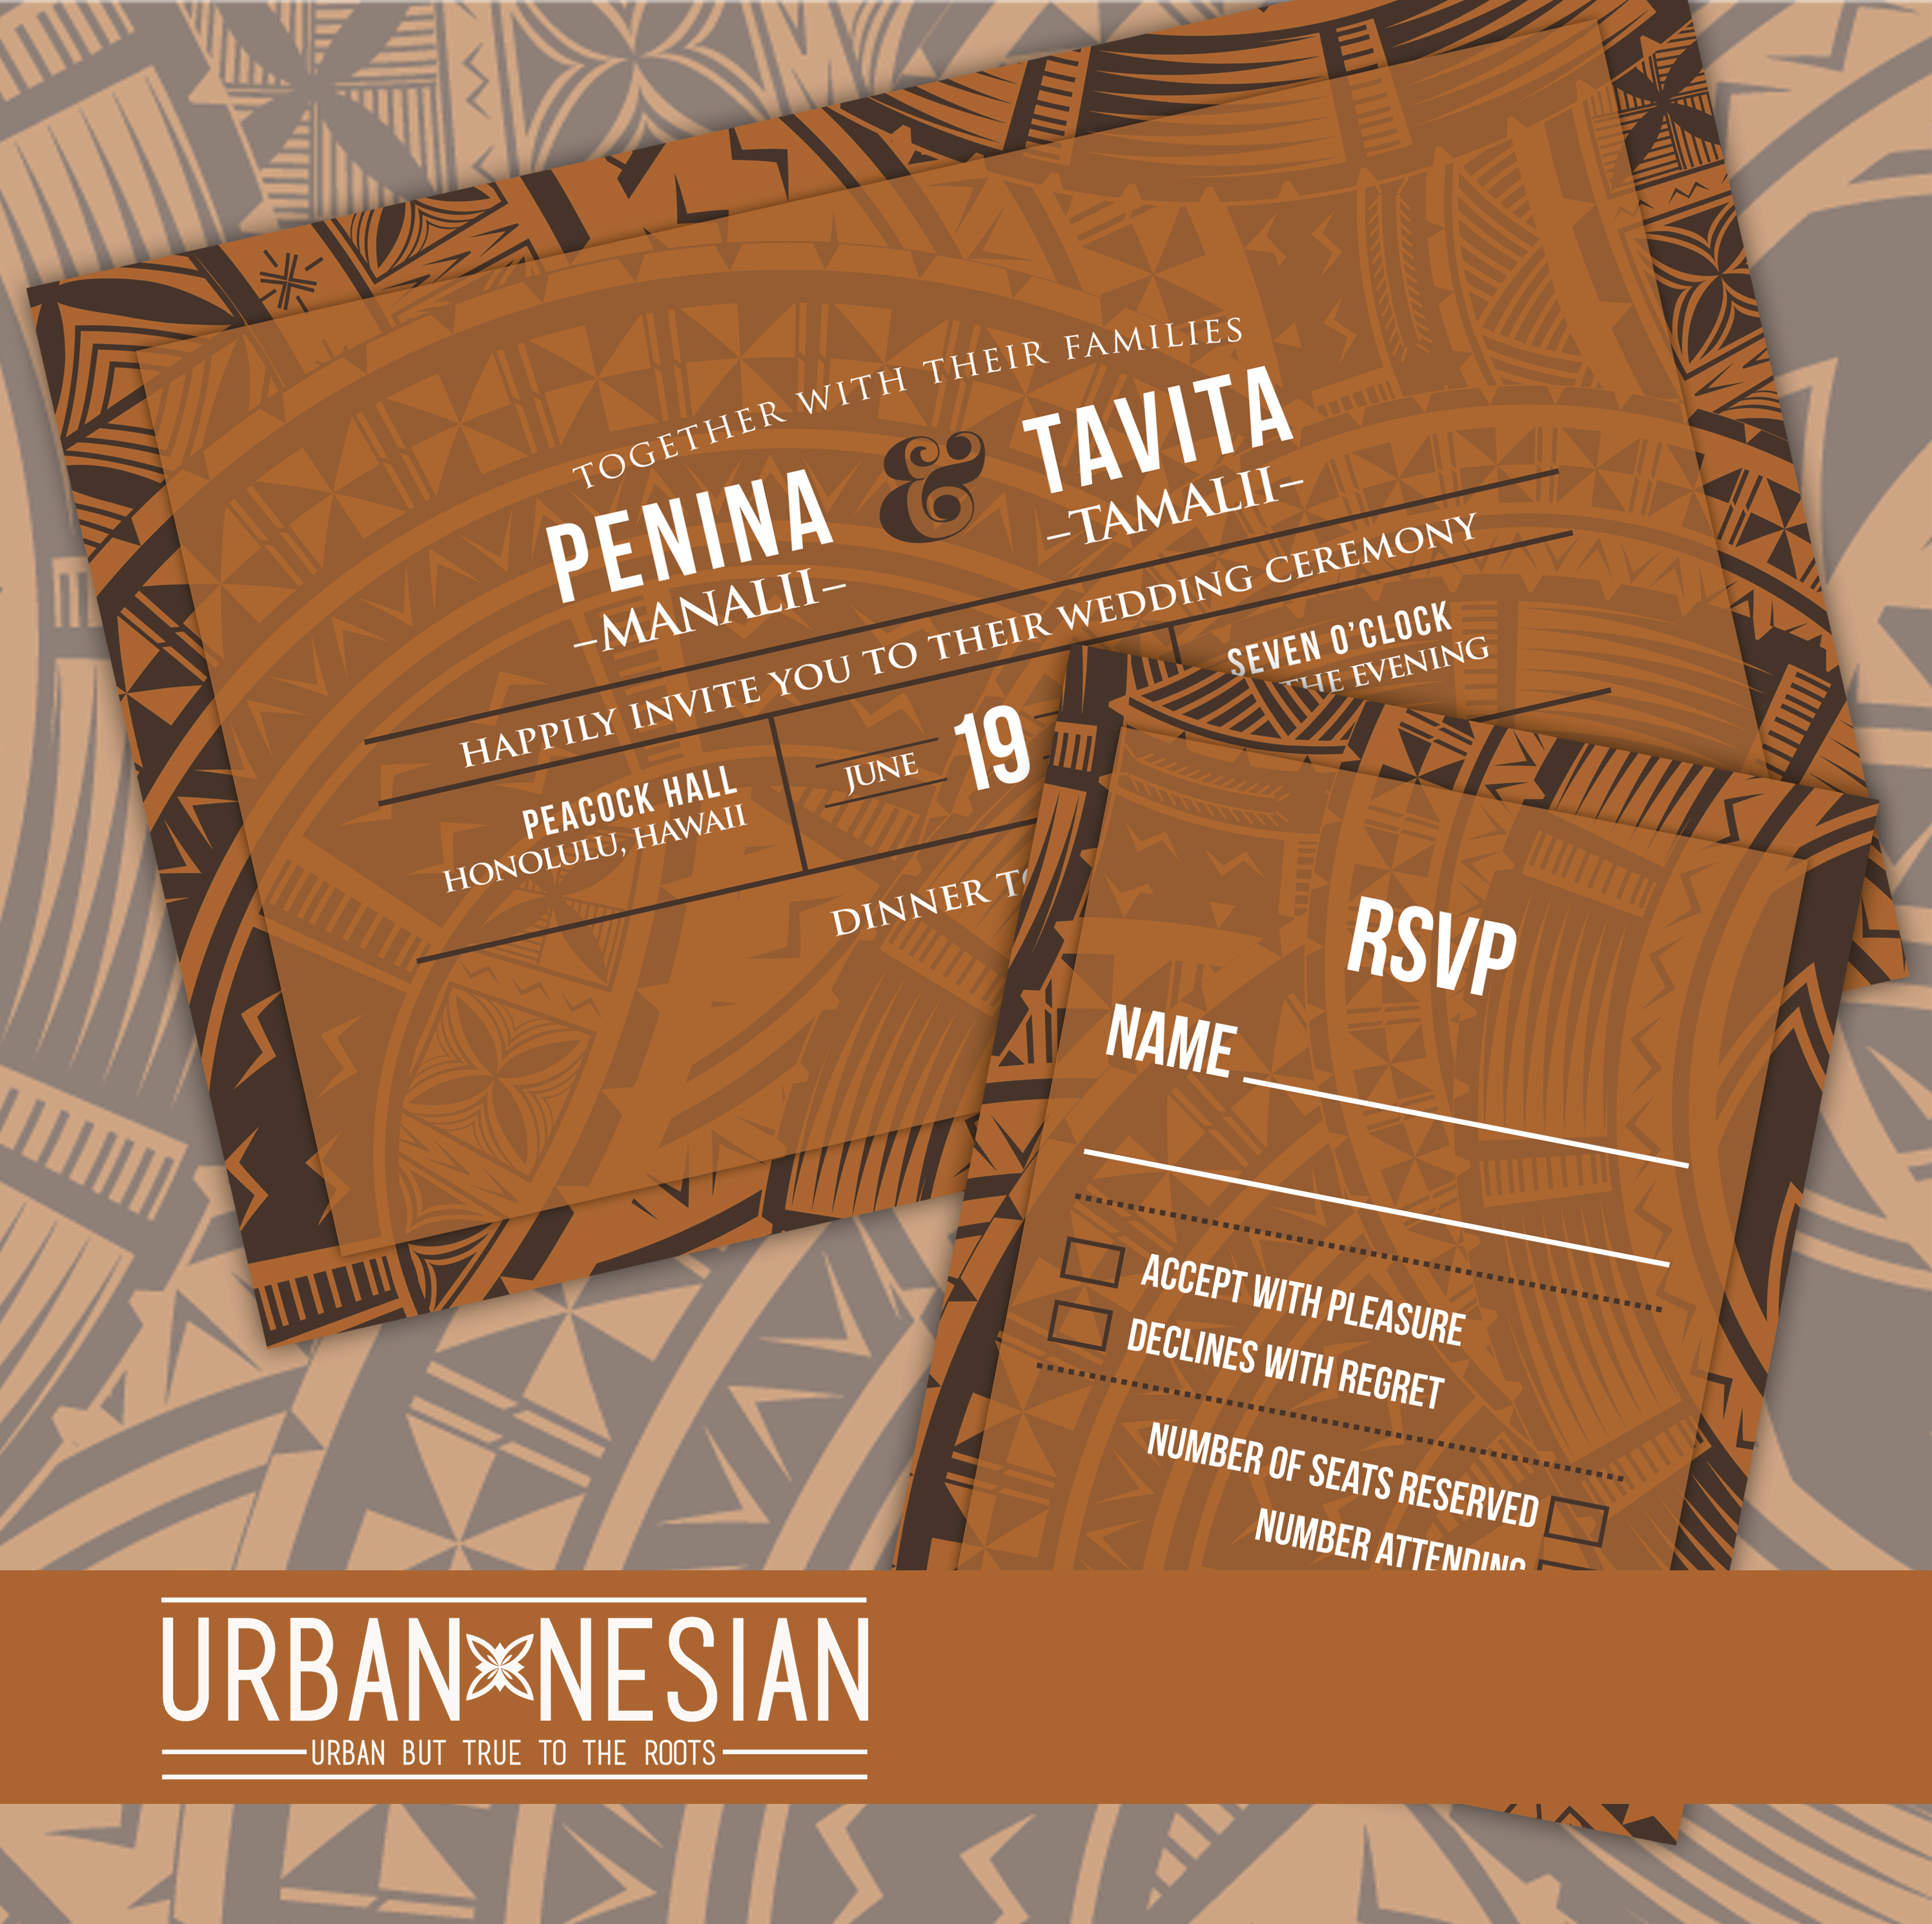 Samoan/Tongan/Fijian Wedding Invitations | Font styles, Rsvp and Fonts